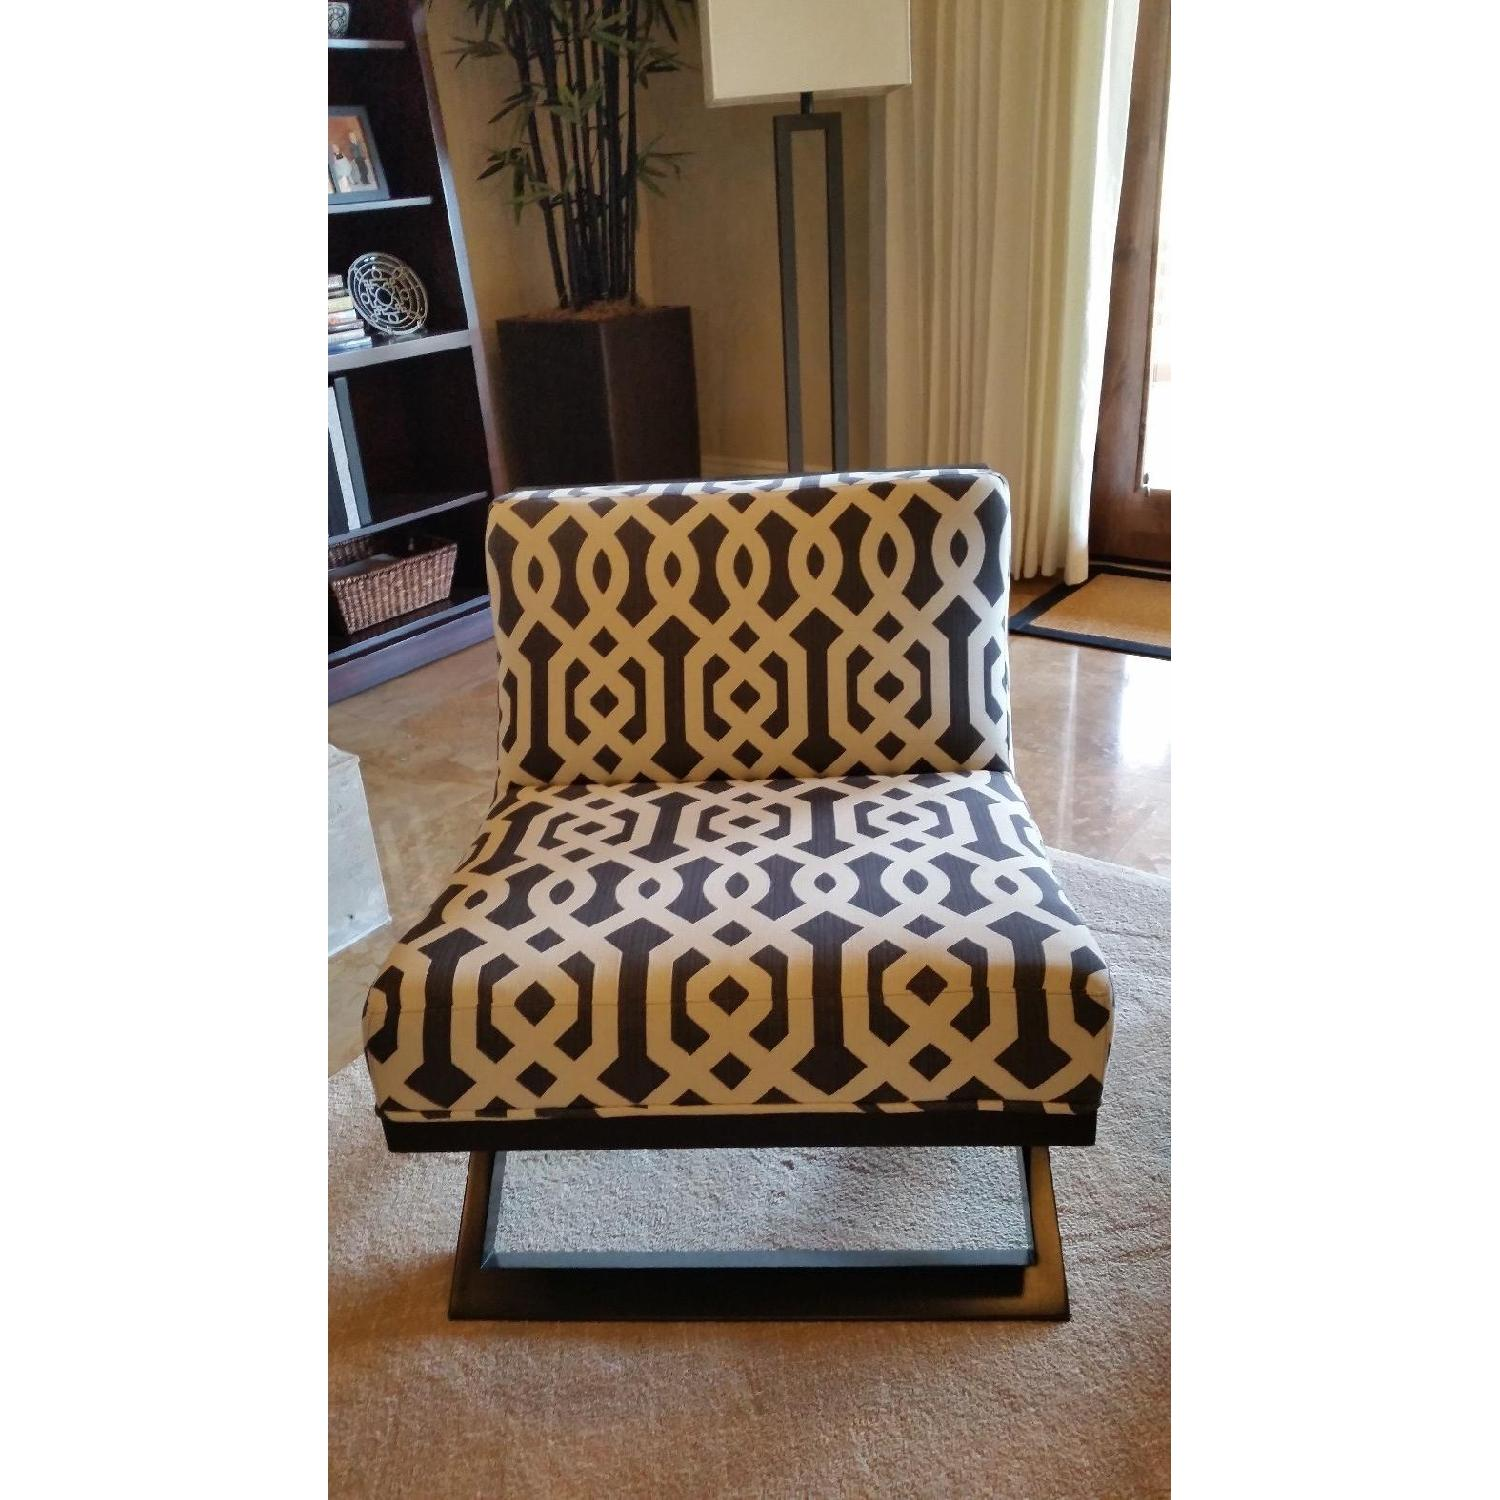 American Leather Black & White Modern Accent Chairs - image-3